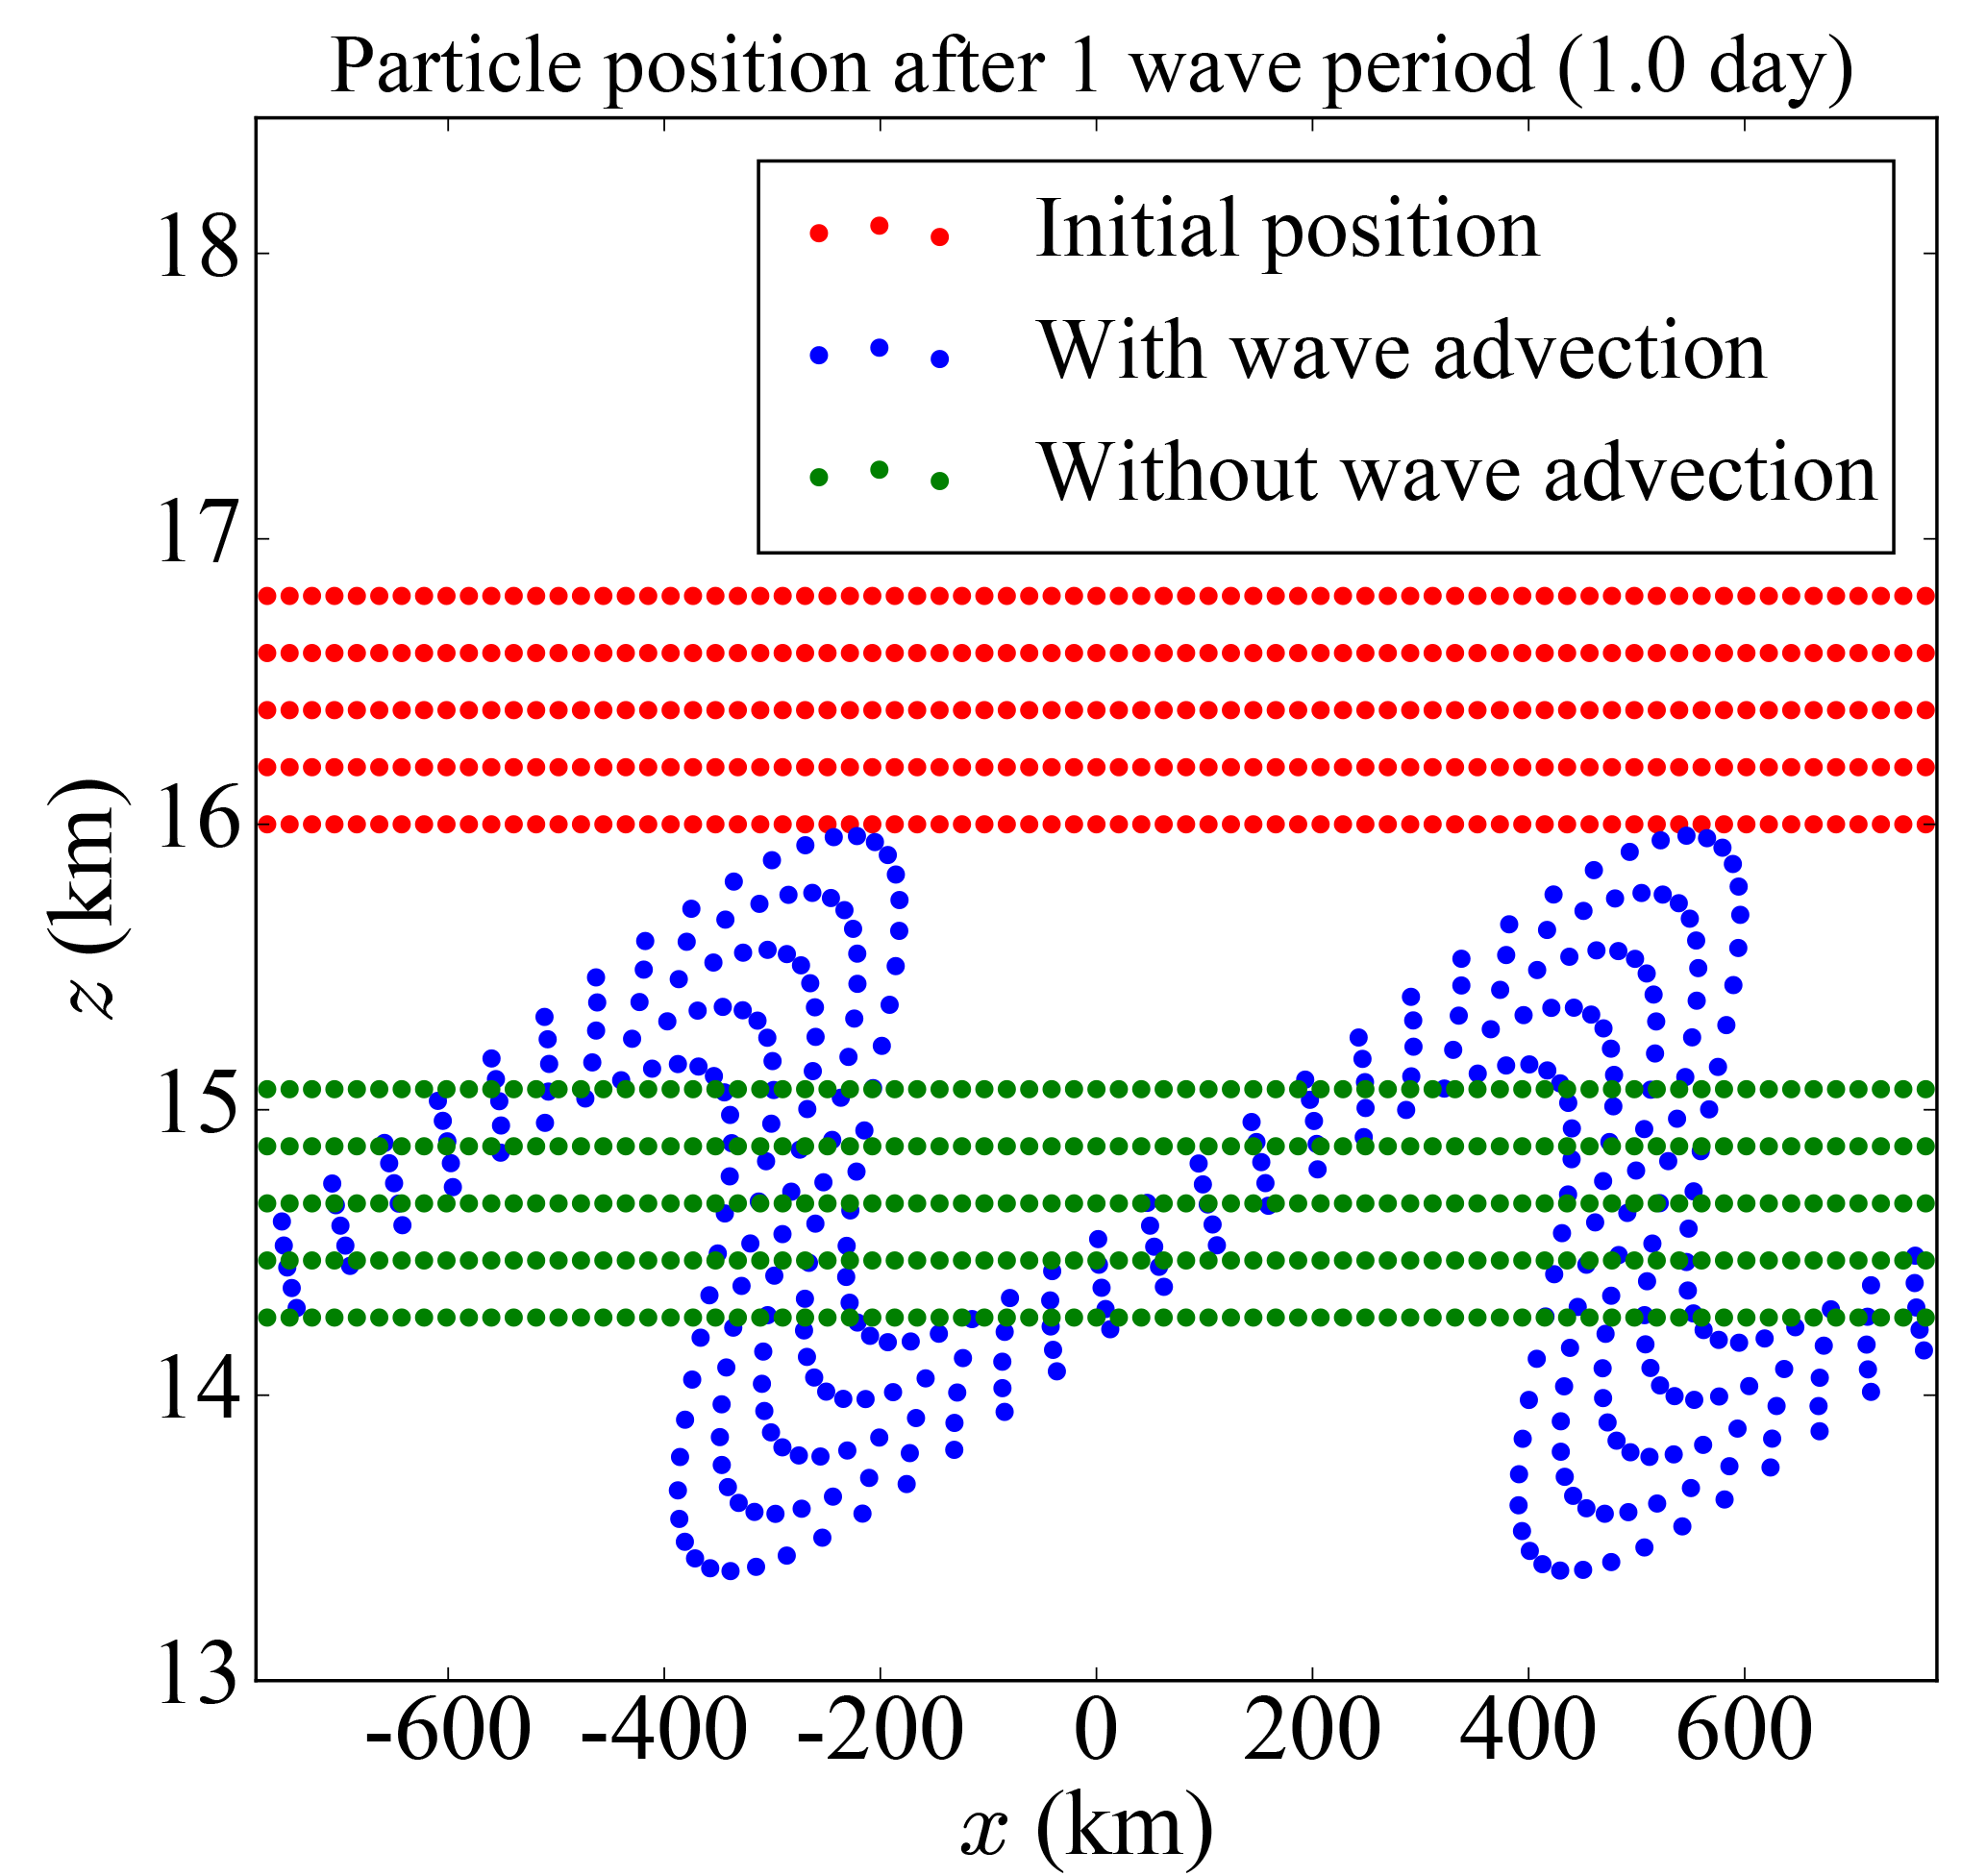 ACP - Impact of gravity waves on the motion and distribution